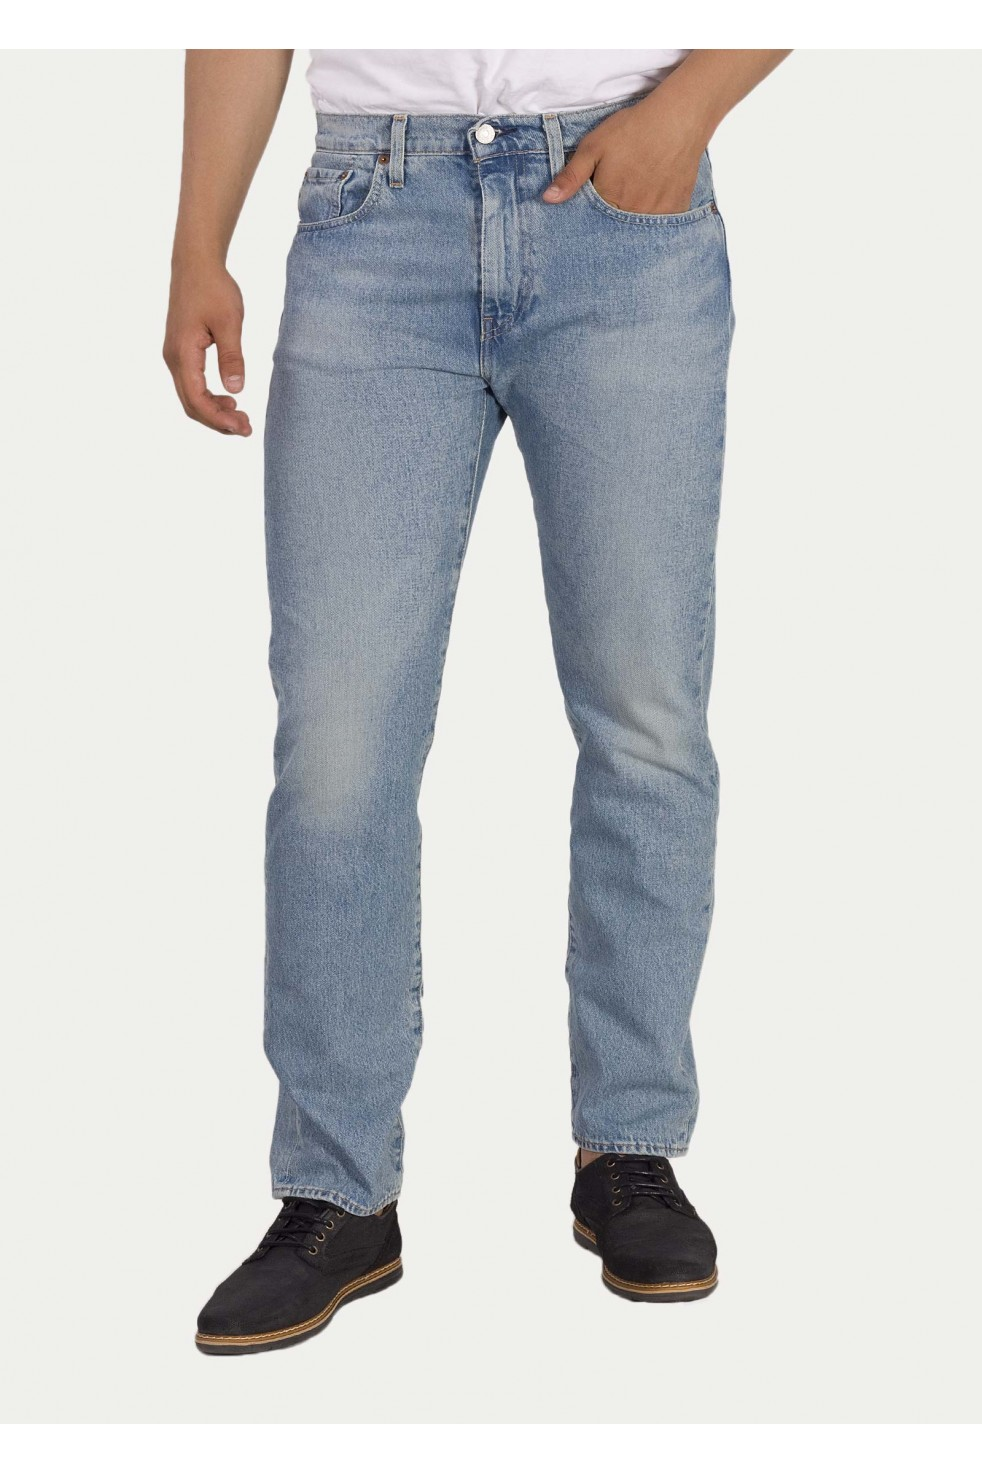 Levis Erkek Jean Pantolon 502 Regular Taper 29507-0187